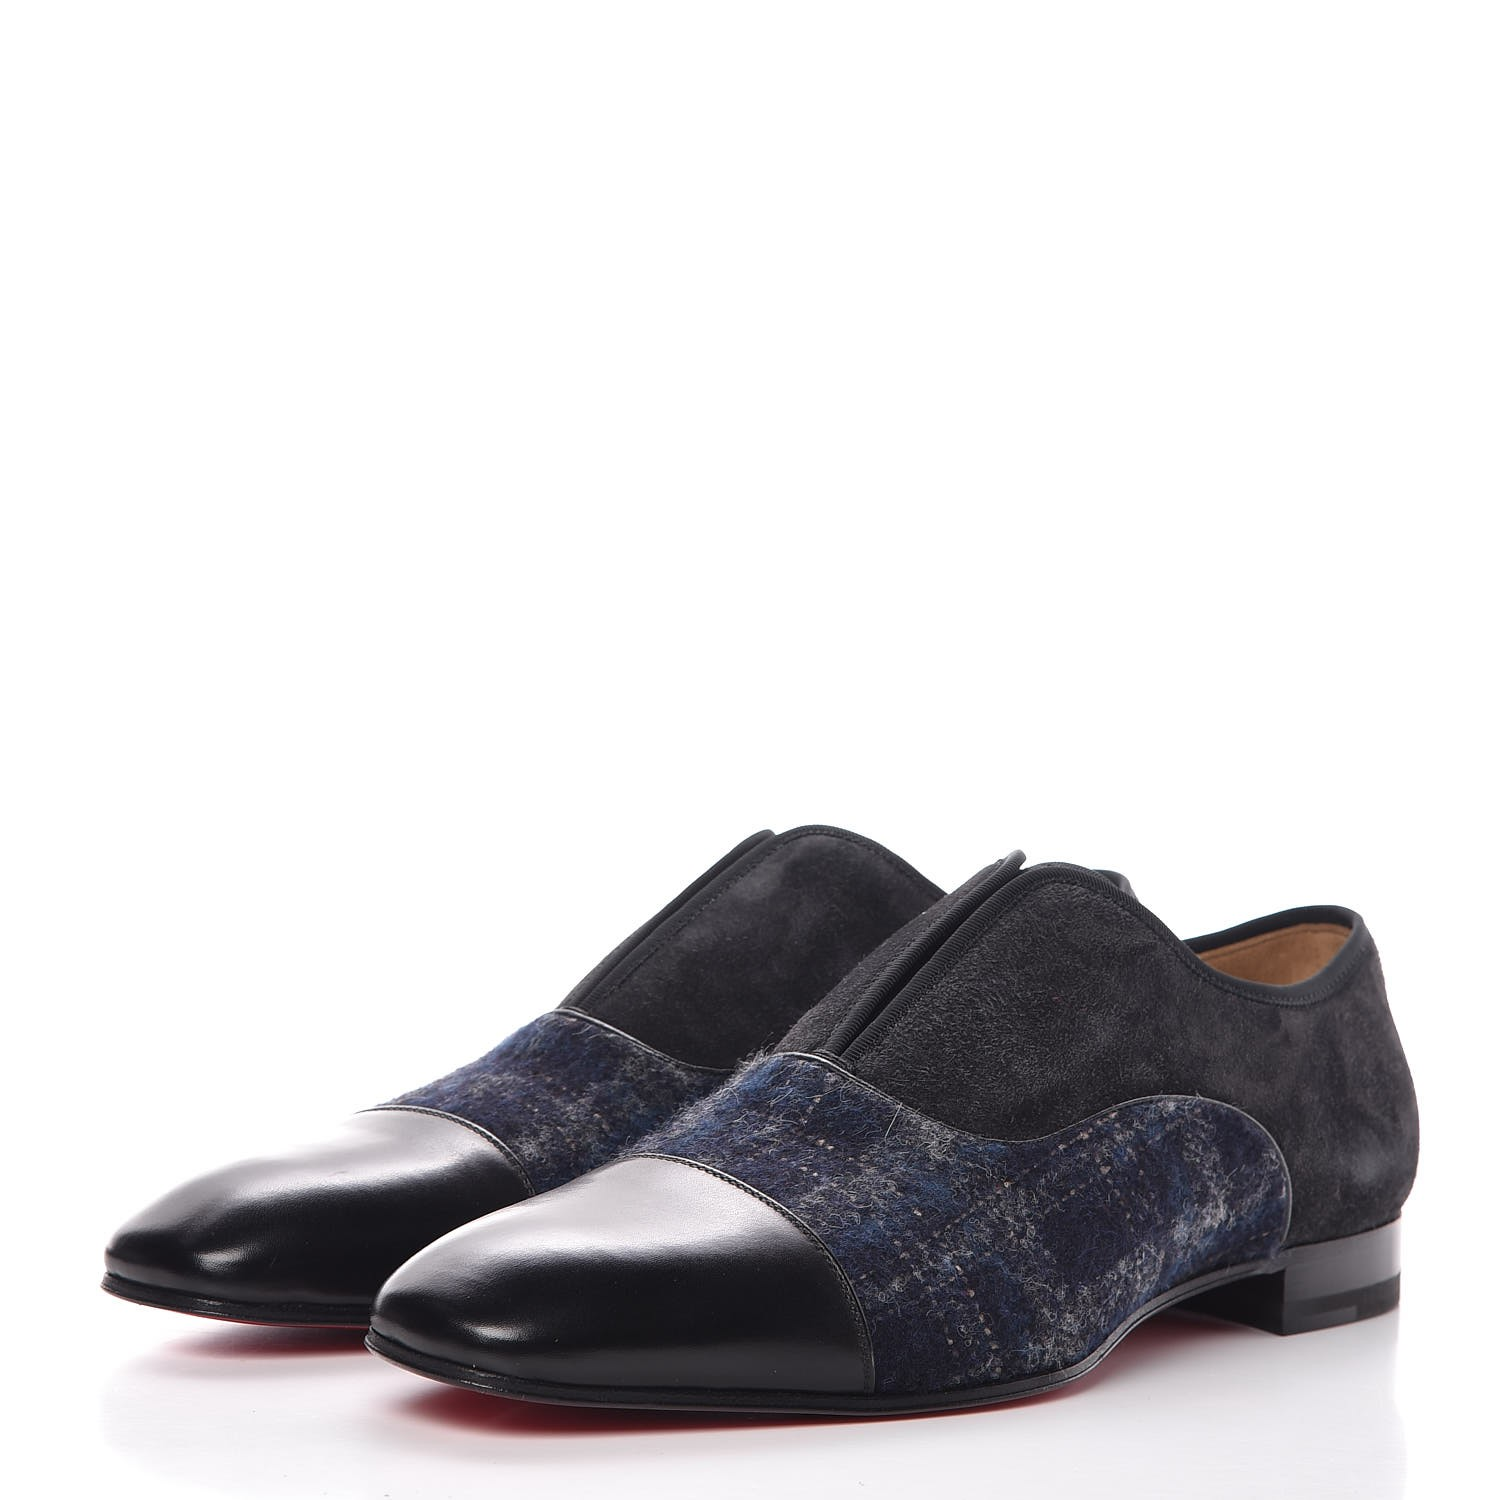 29ccebee1b5 CHRISTIAN LOUBOUTIN Mens Suede Wool Alpha Male Flat Loafers 42 Black 346084